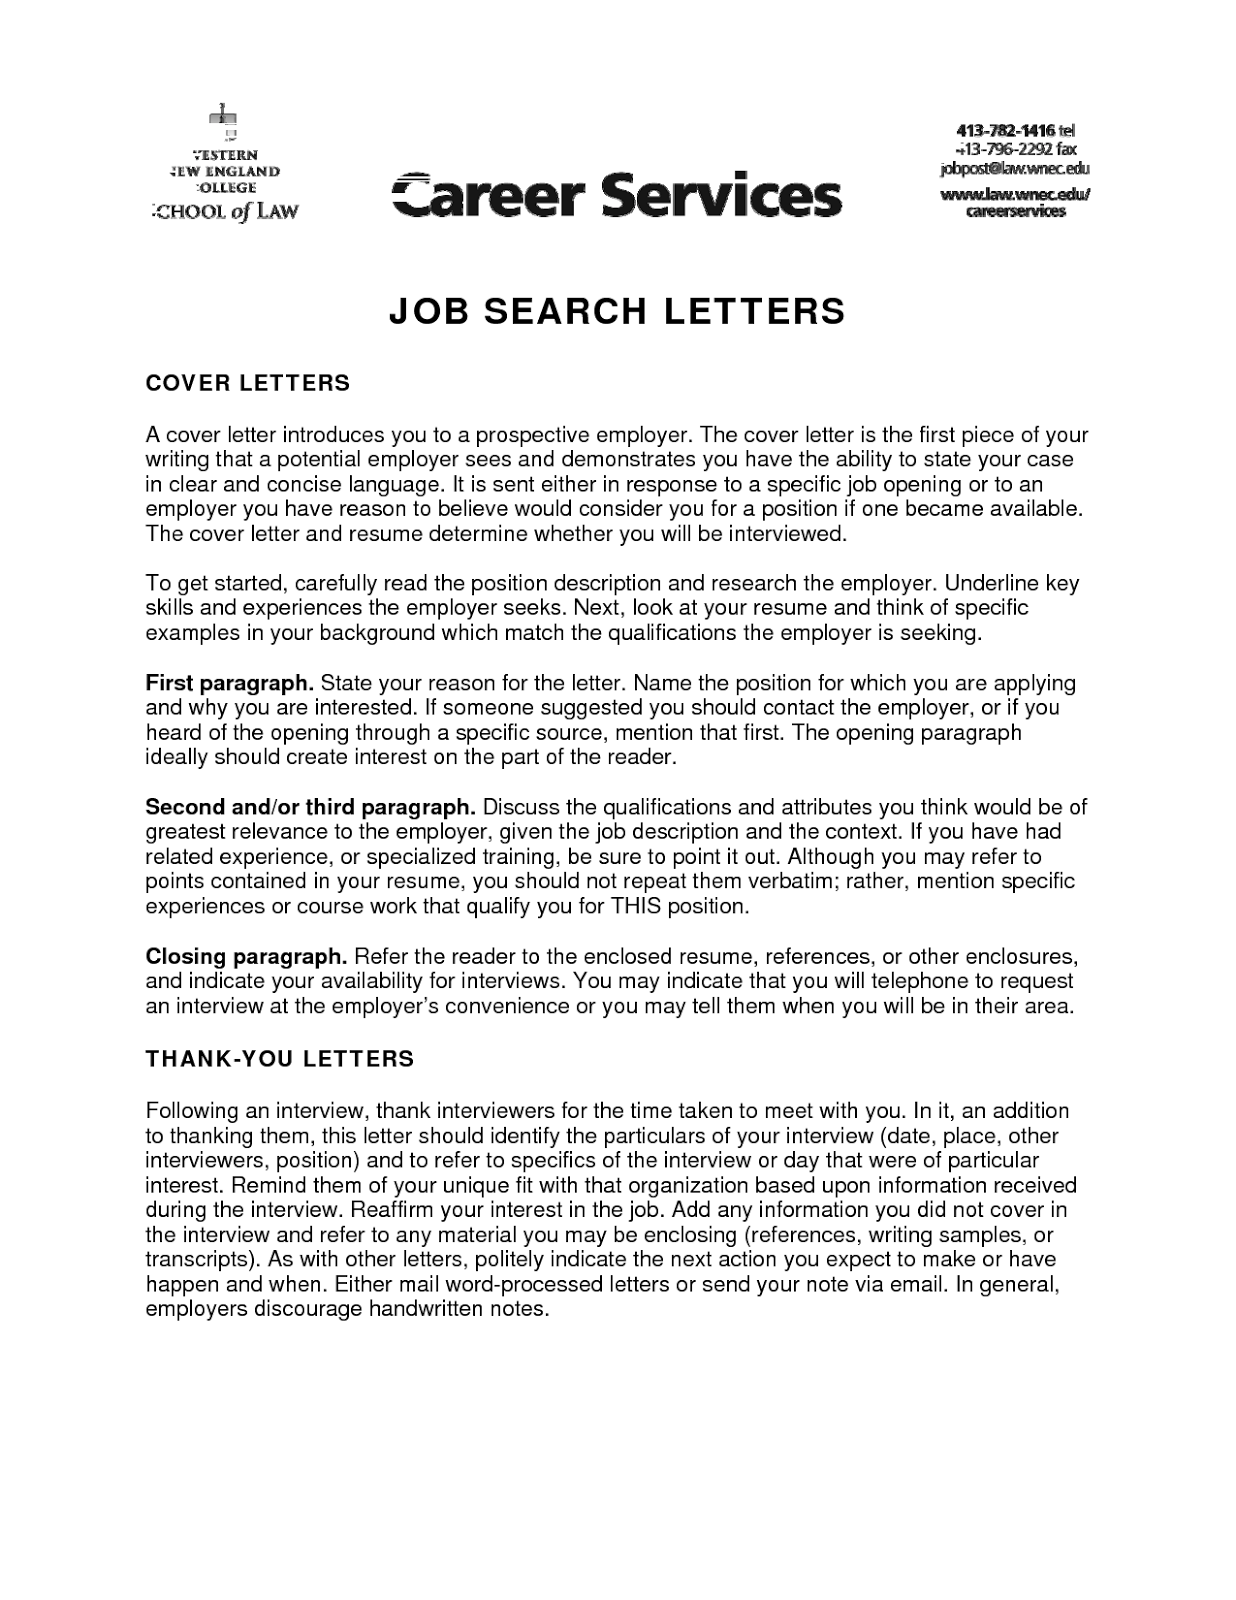 Great Opening Lines For Cover Letters Image collections - Cover ...